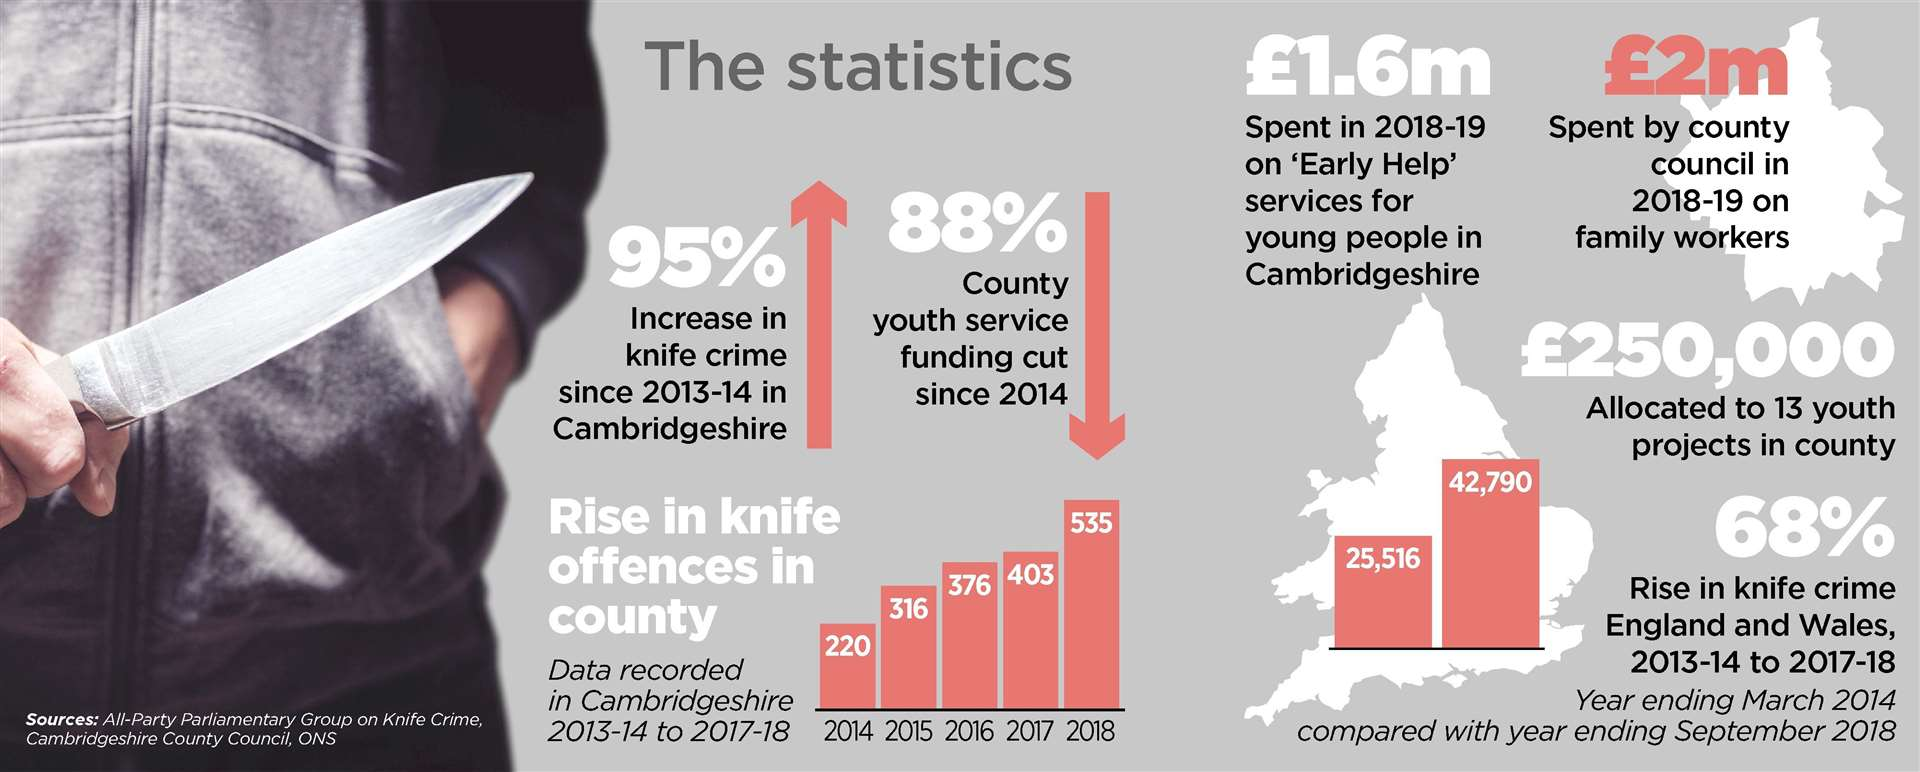 Knife crime increase blamed on cuts in youth services in Cambridgeshire